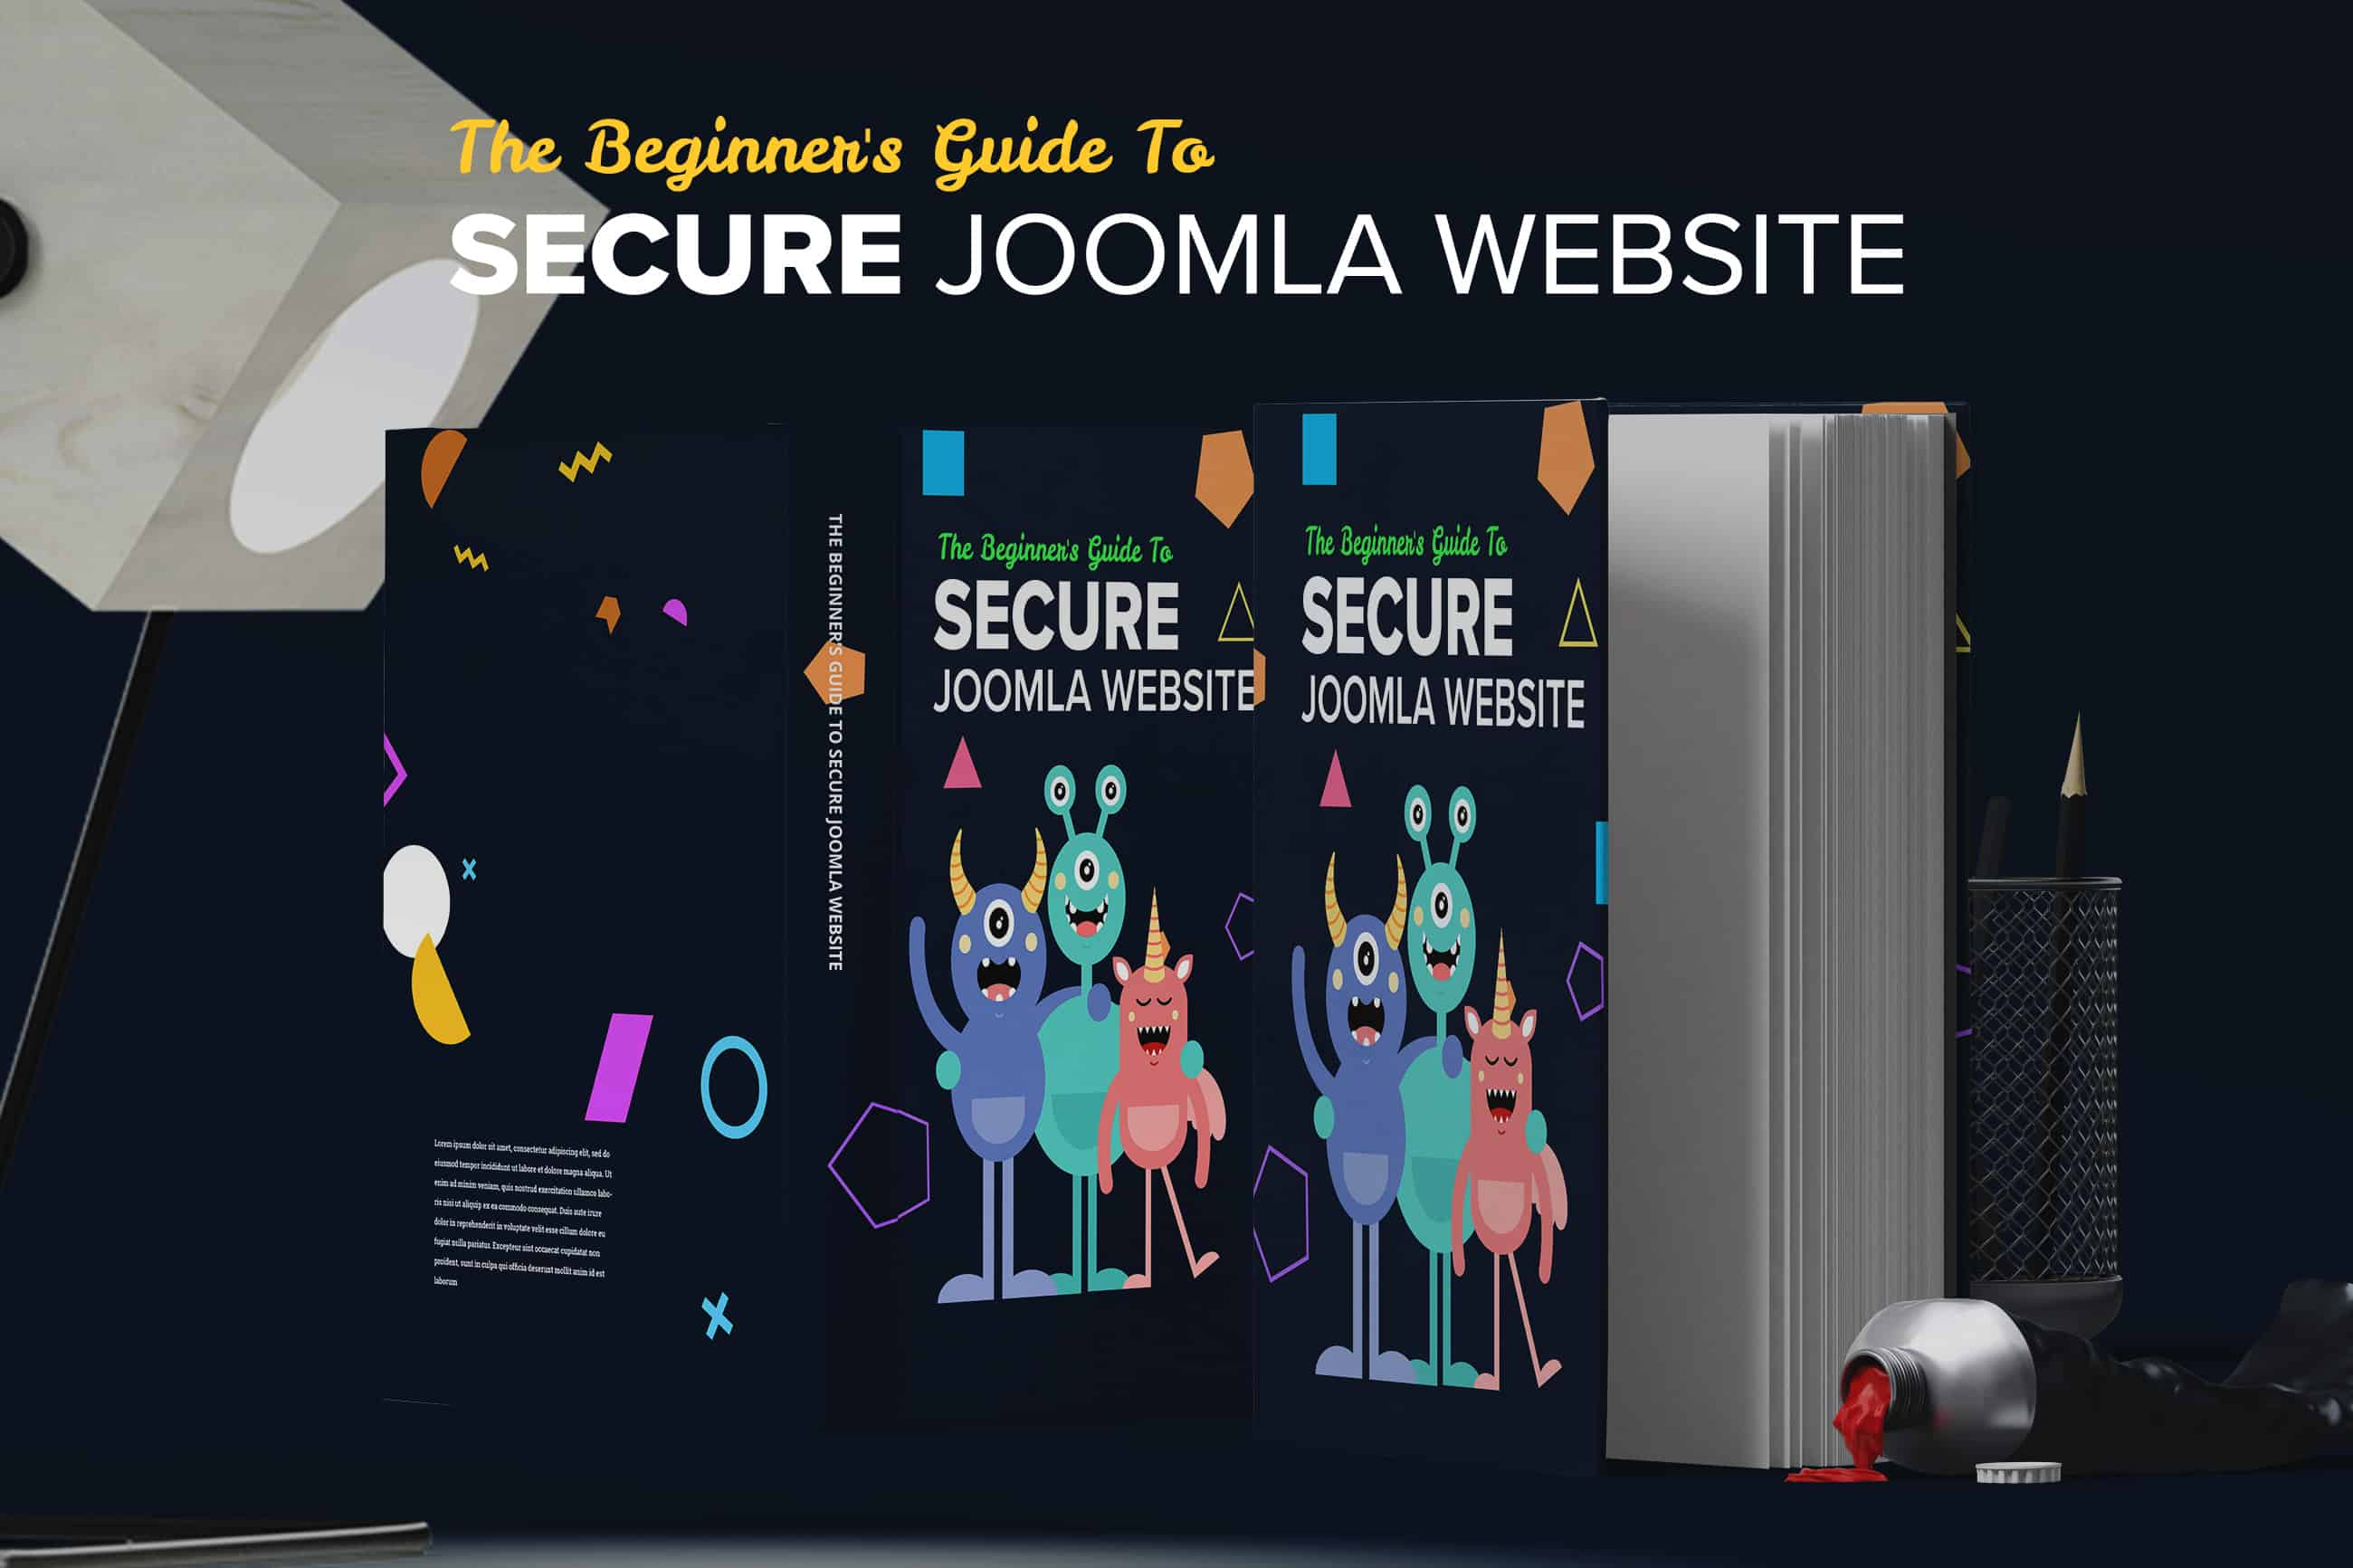 The beginners guide to secure joomla website guidejoomlasecurity 1betcityfo Image collections